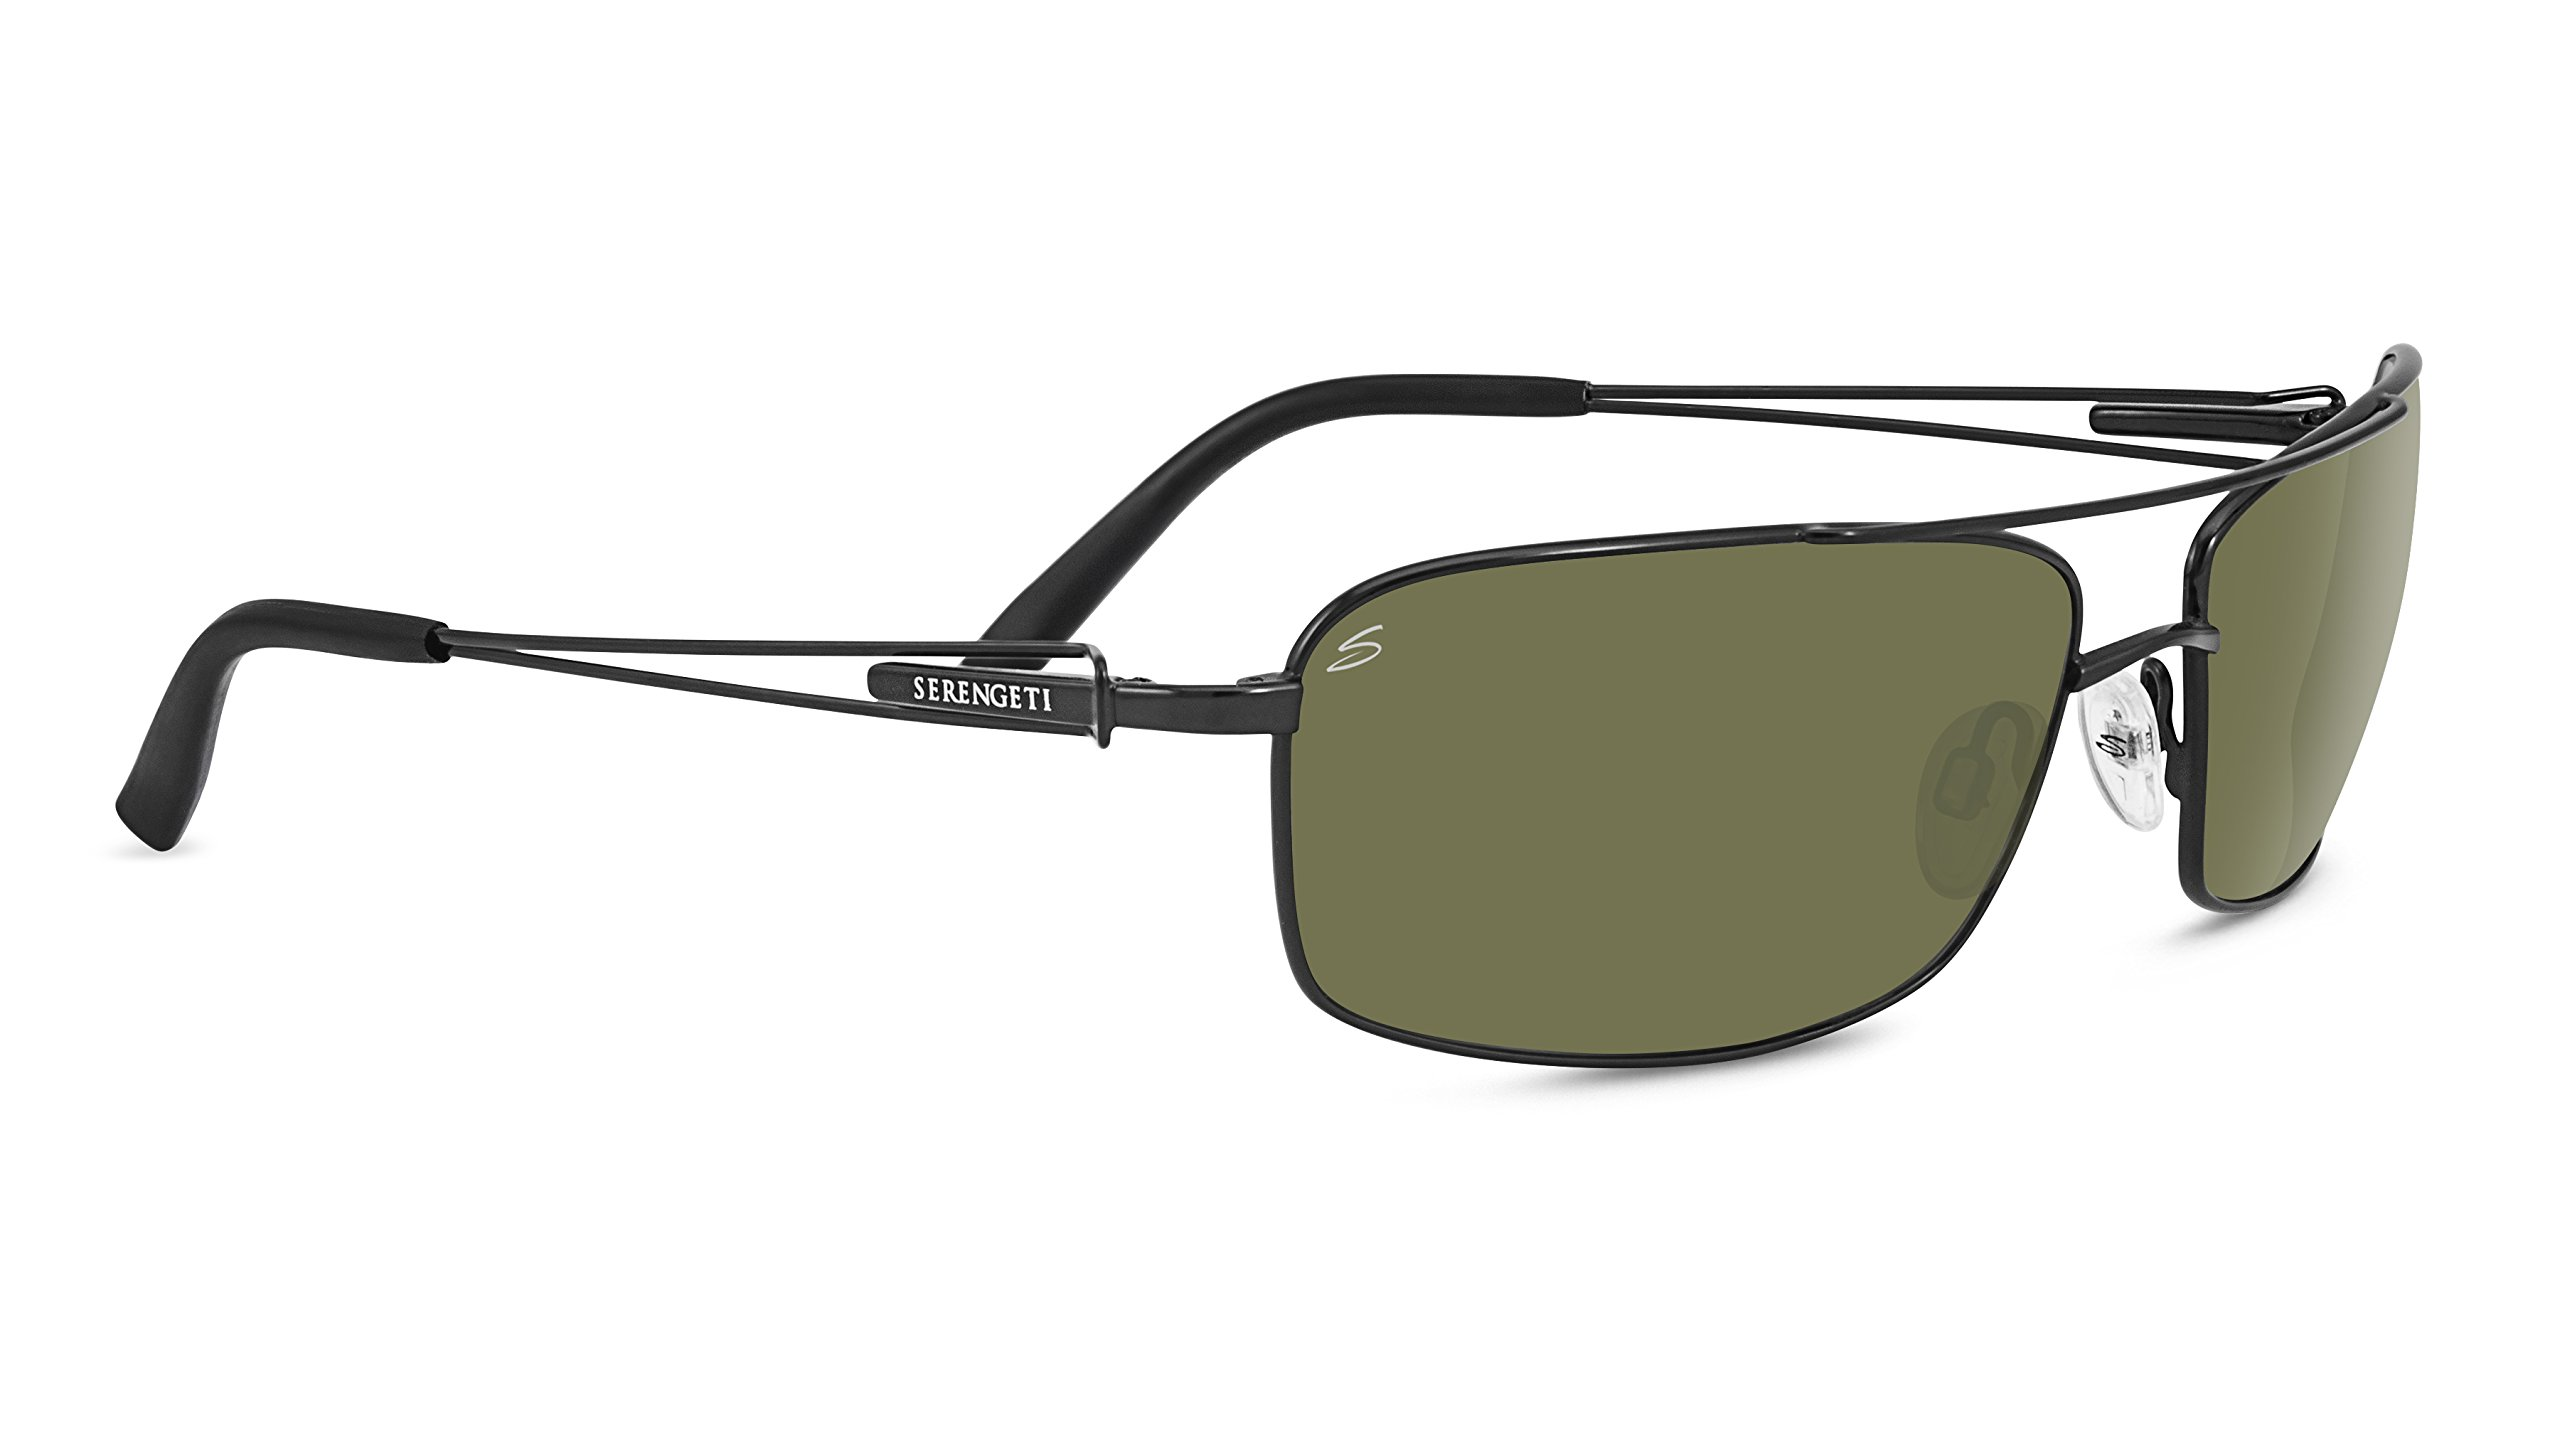 Serengeti Dante sunglasses, Satin Black